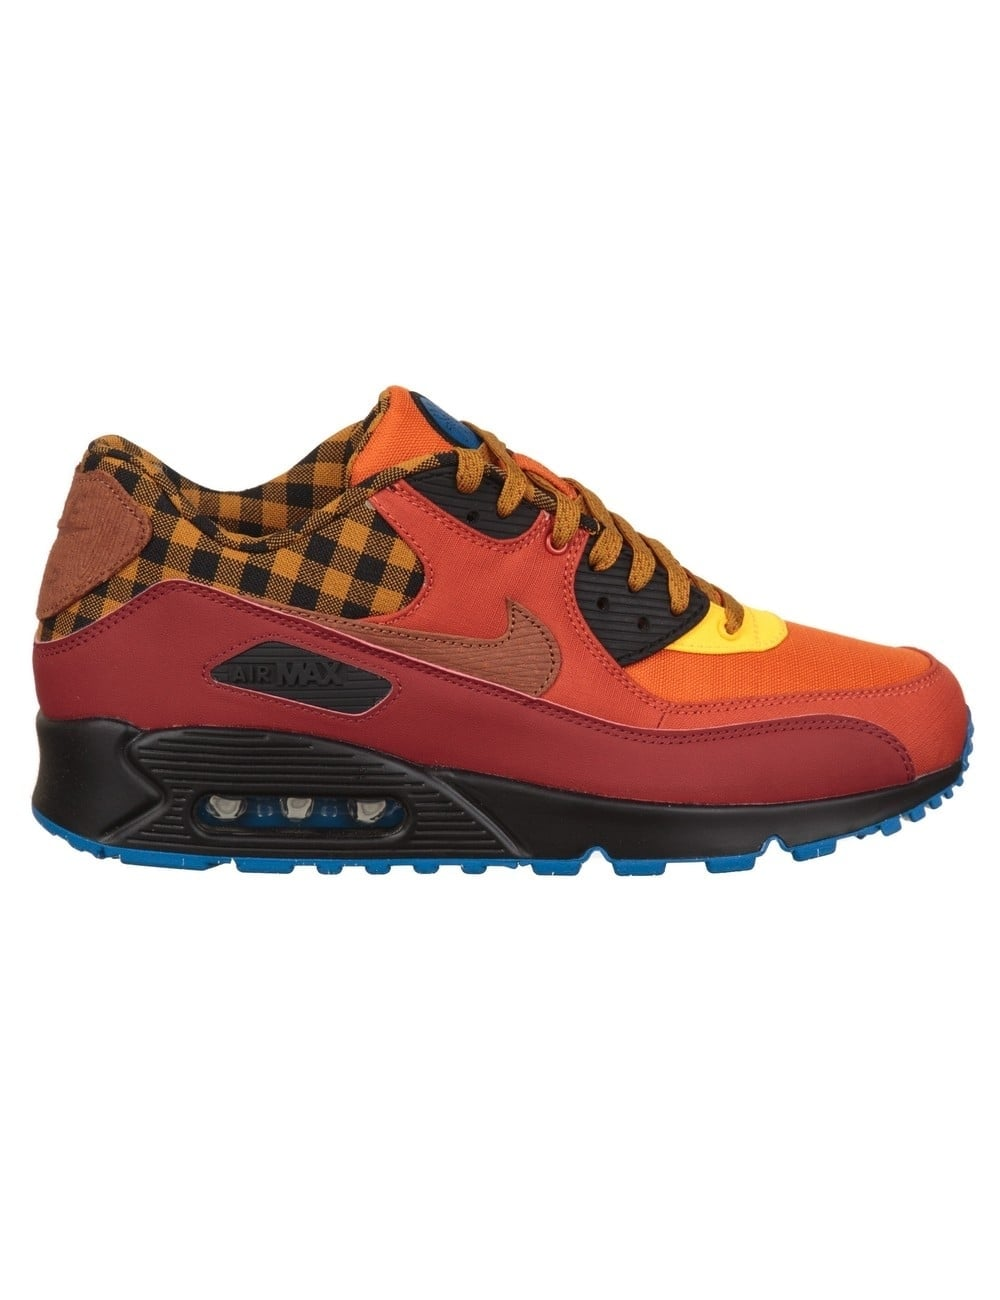 new product bb96f 8adb7 ... discount code for air max 90 premium shoes dark cayenne gold campfire  pack fe5c8 62939 ...